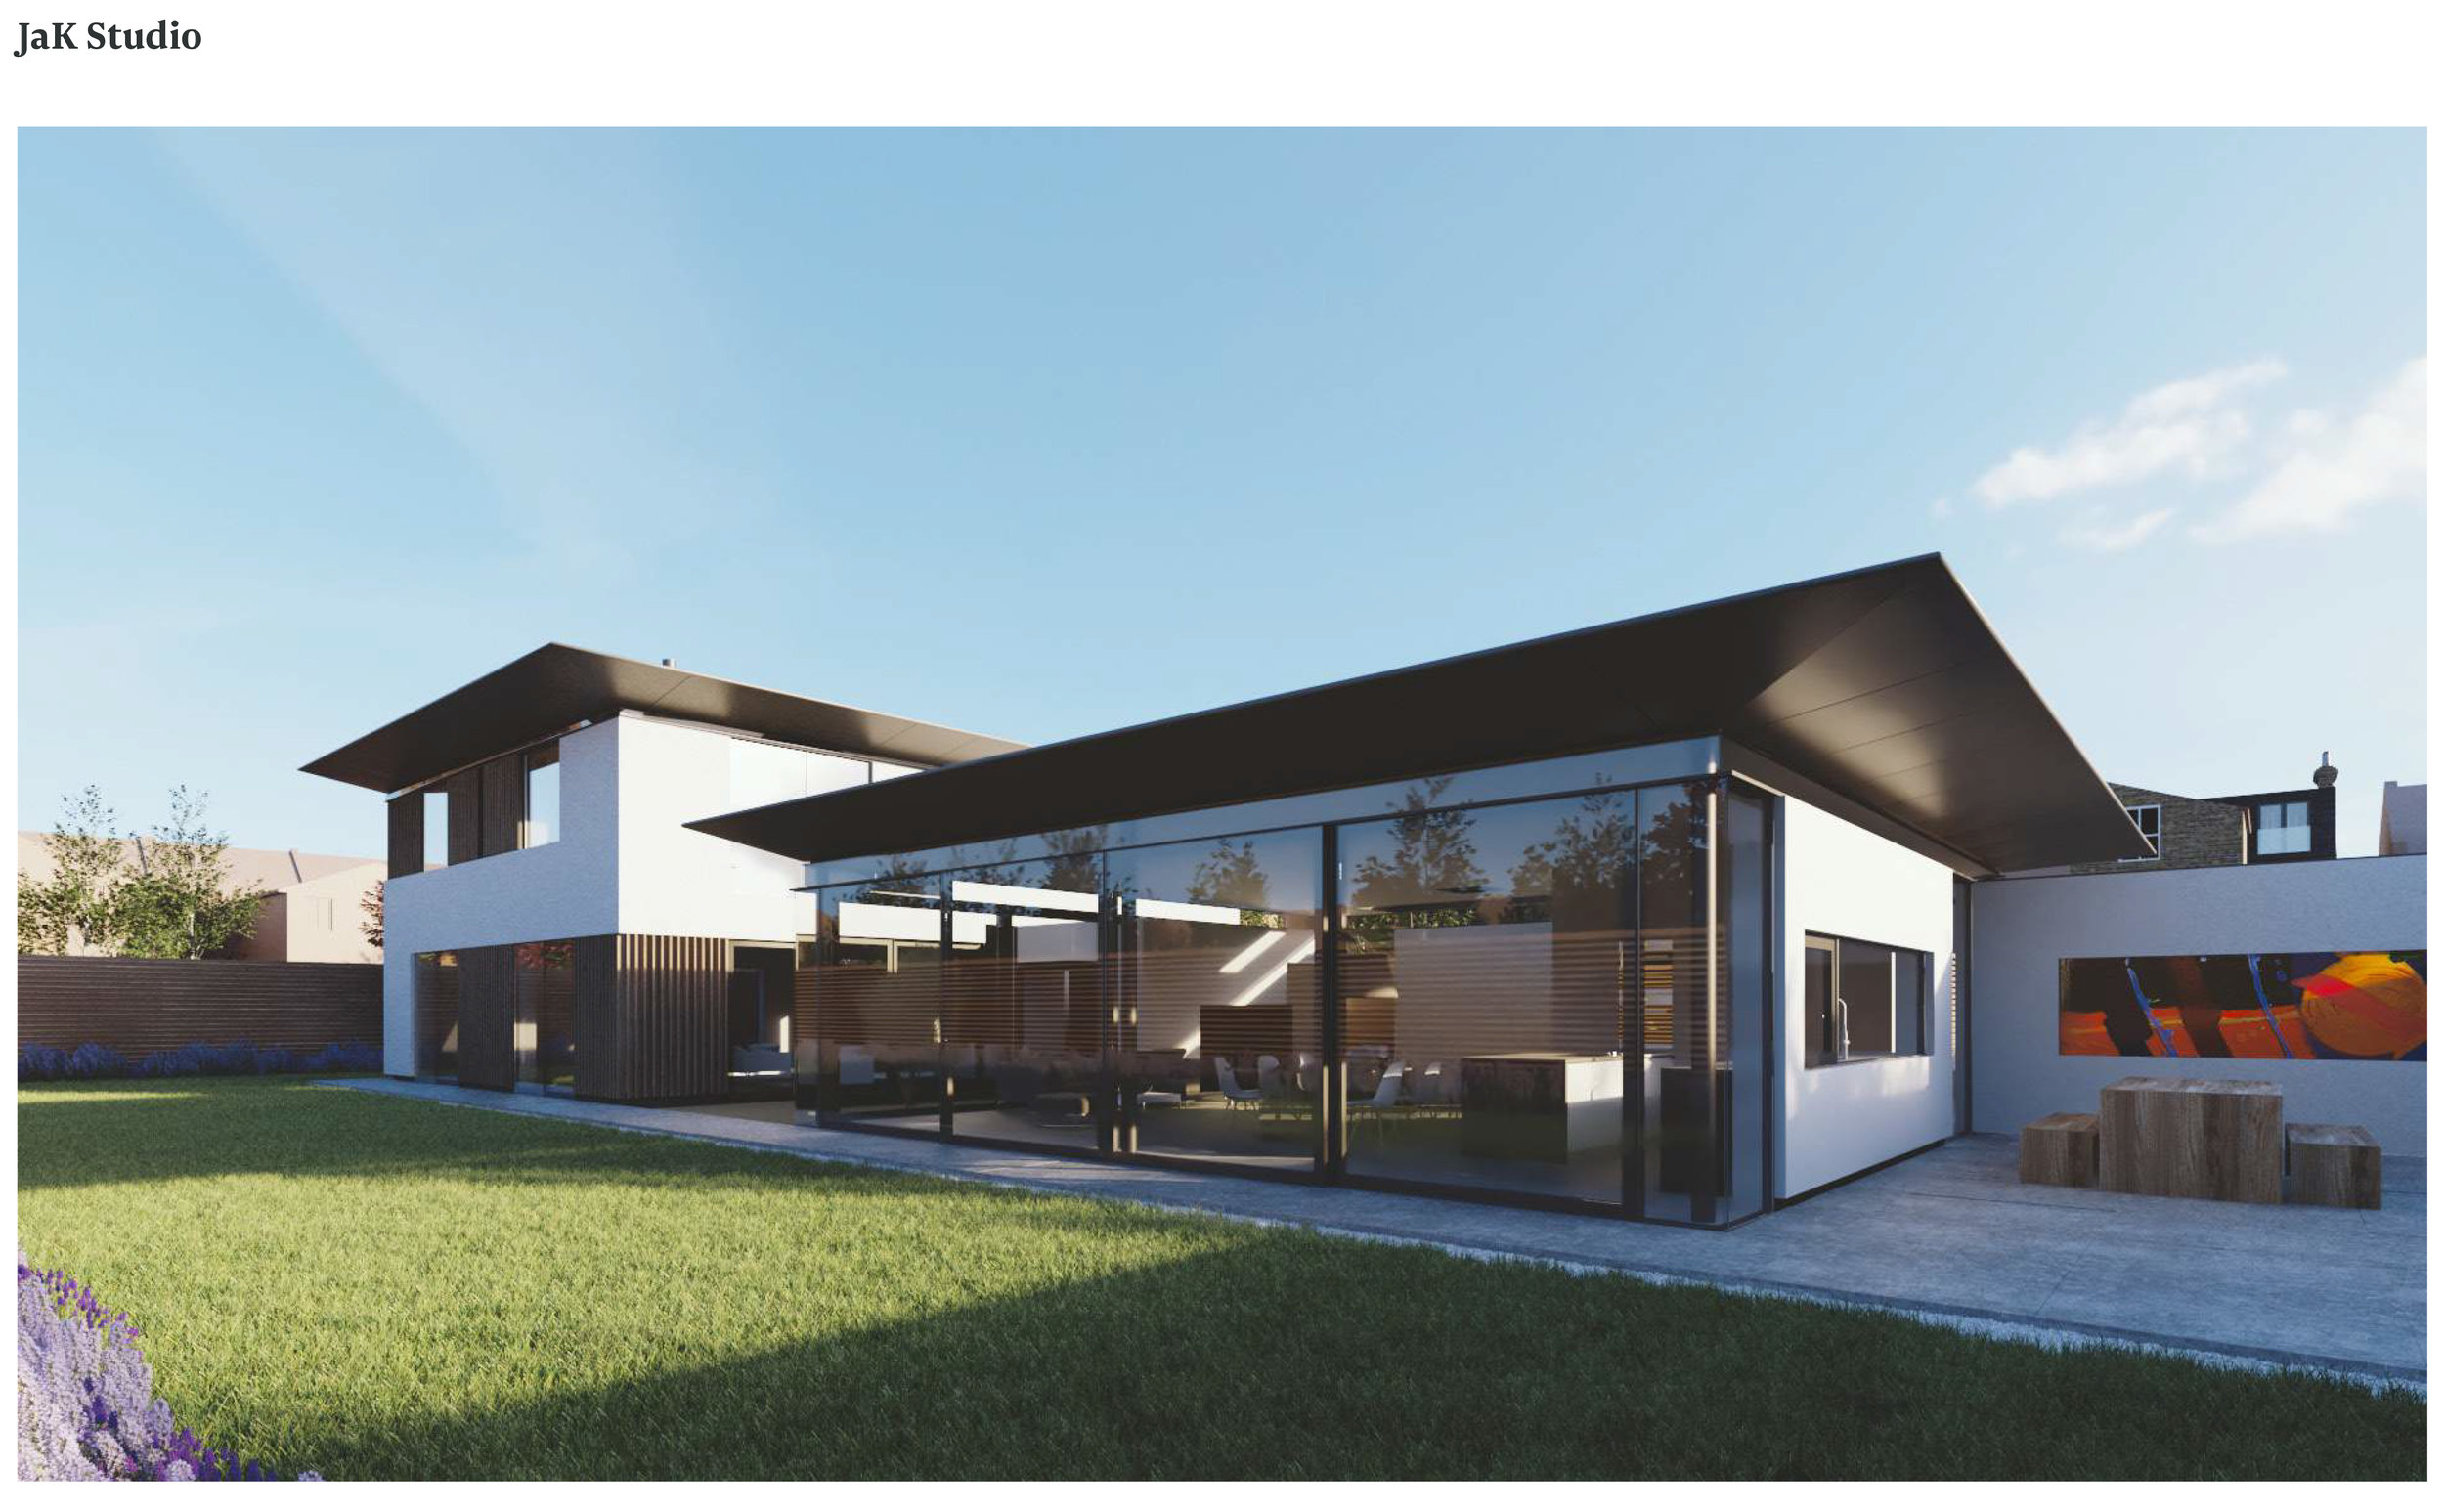 05_New house drawings-13.jpg